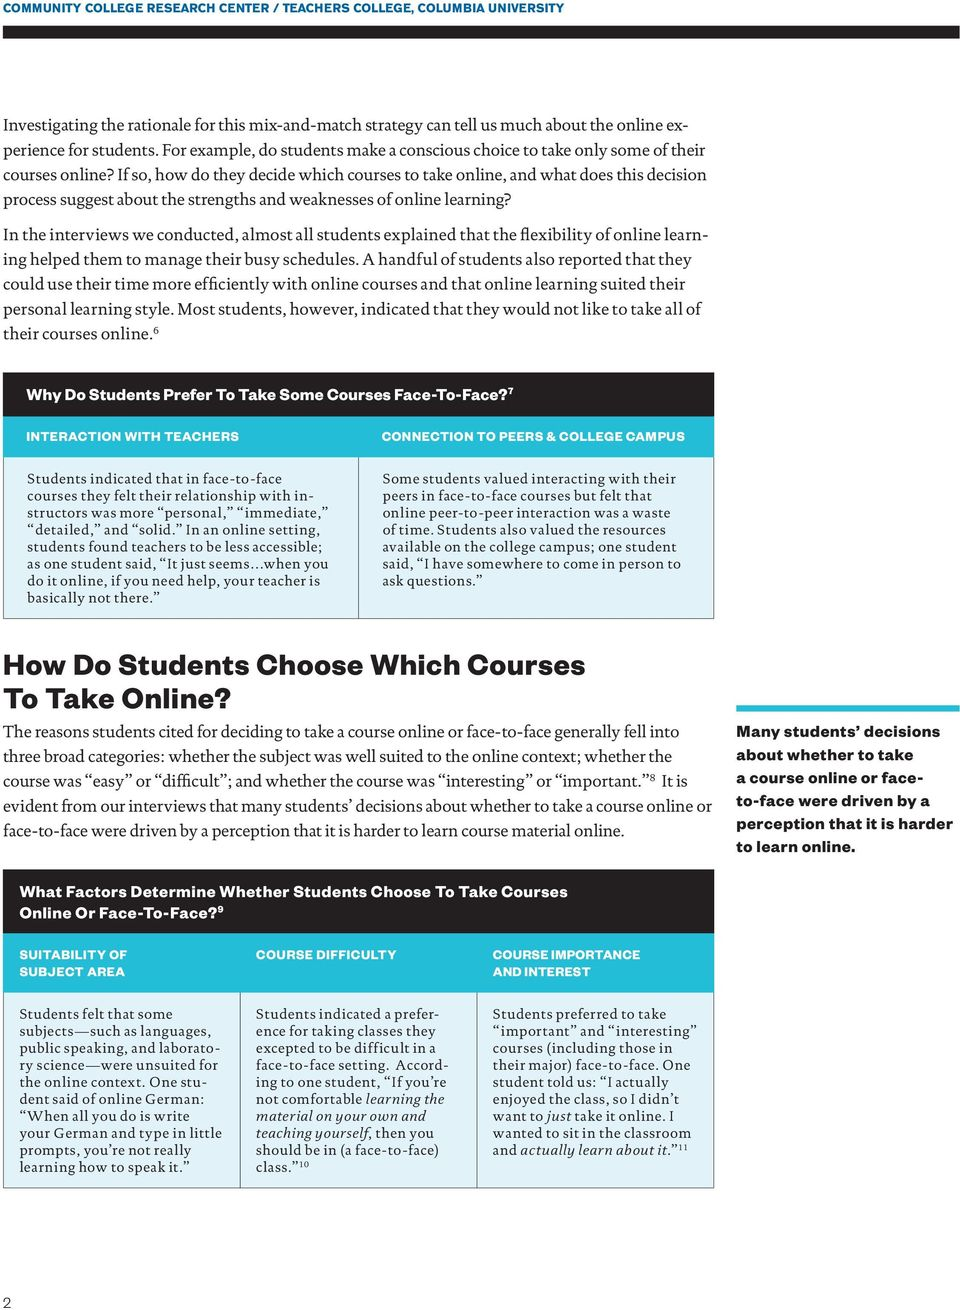 If so, how do they decide which courses to take online, and what does this decision process suggest about the strengths and weaknesses of online learning?